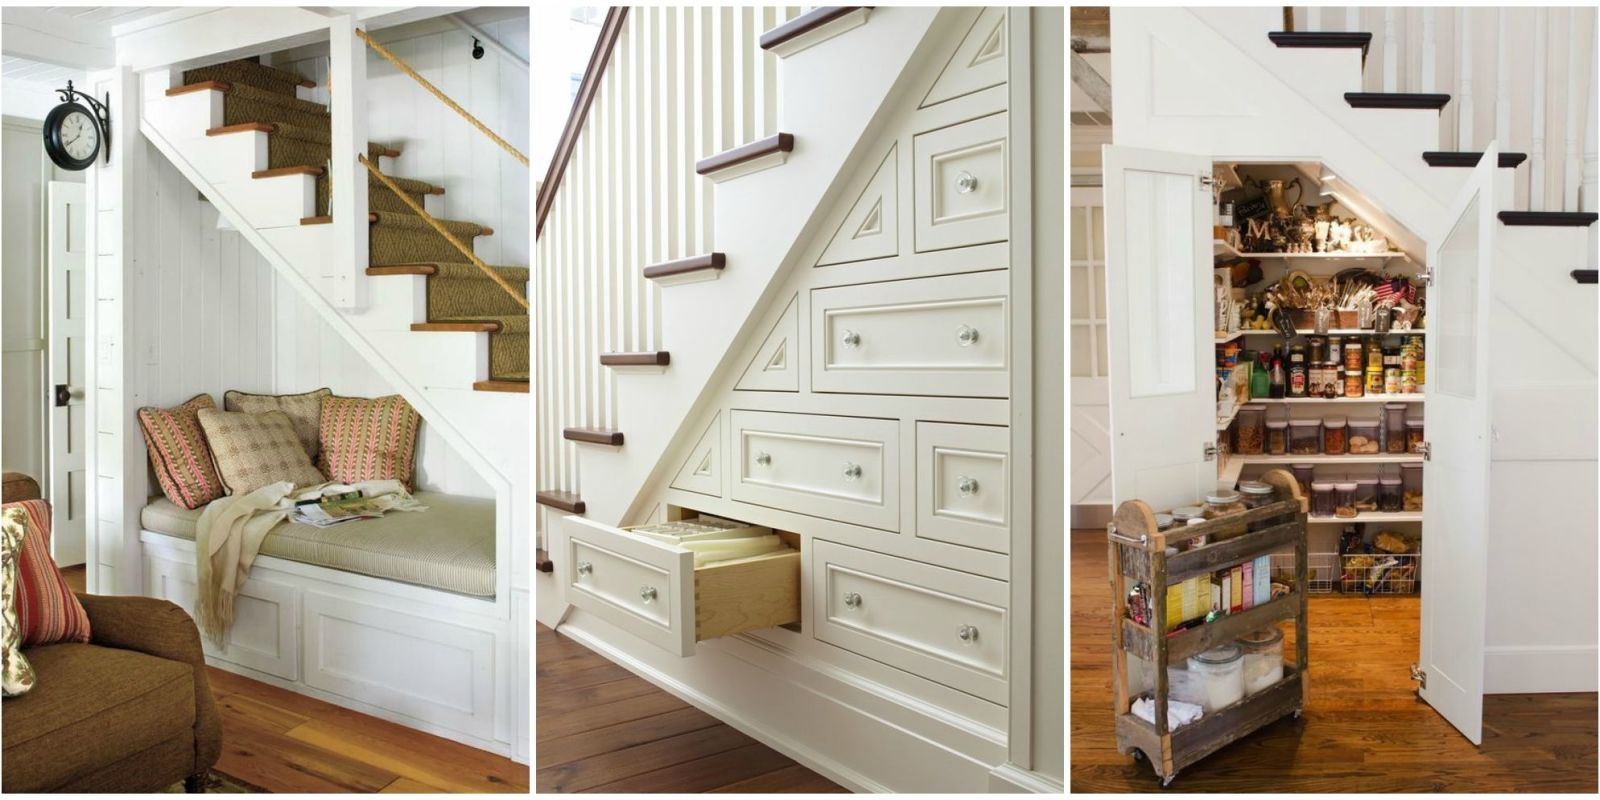 Superb 15 Genius Under Stairs Storage Ideas   What To Do With Empty Space Under  Stairs